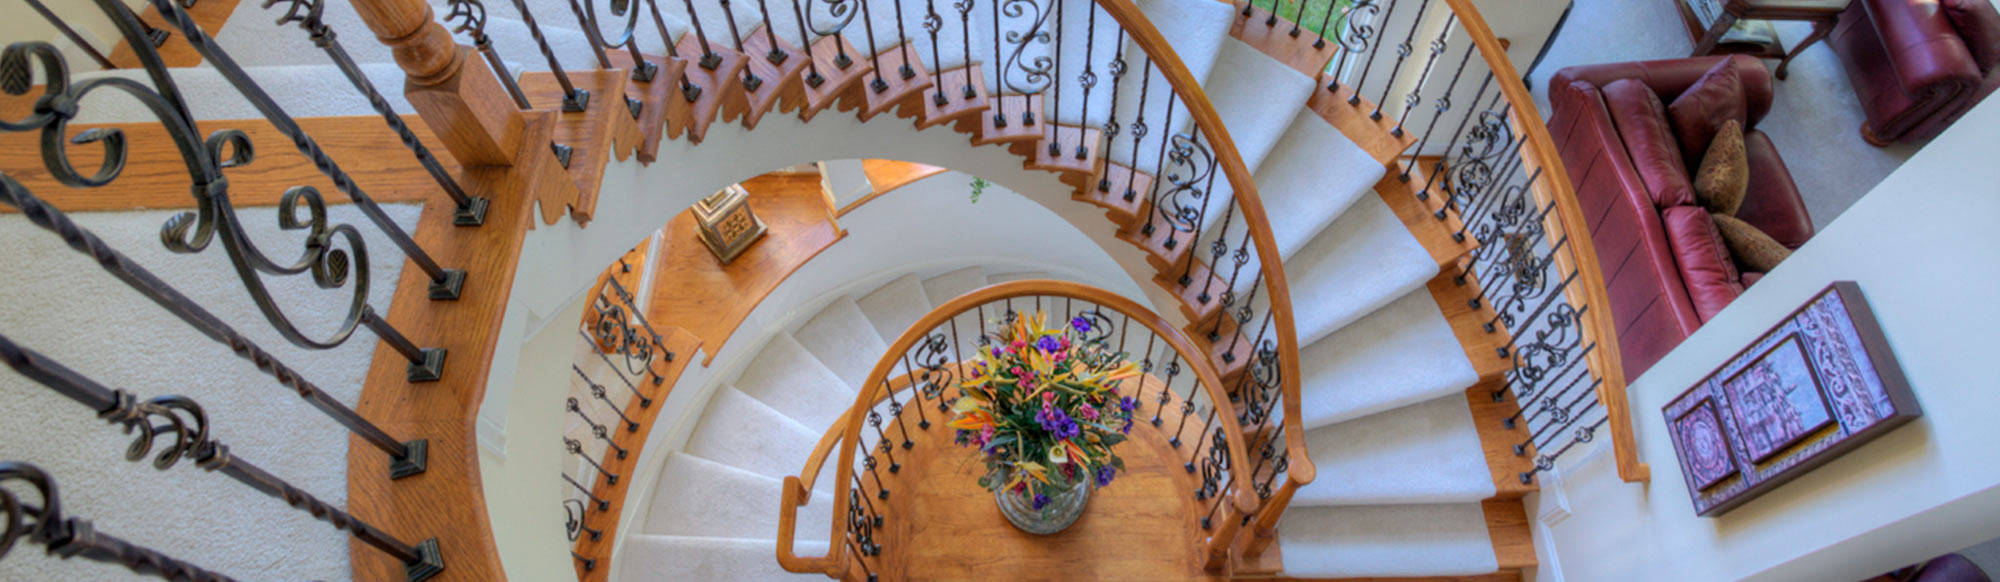 Two level curved staircase